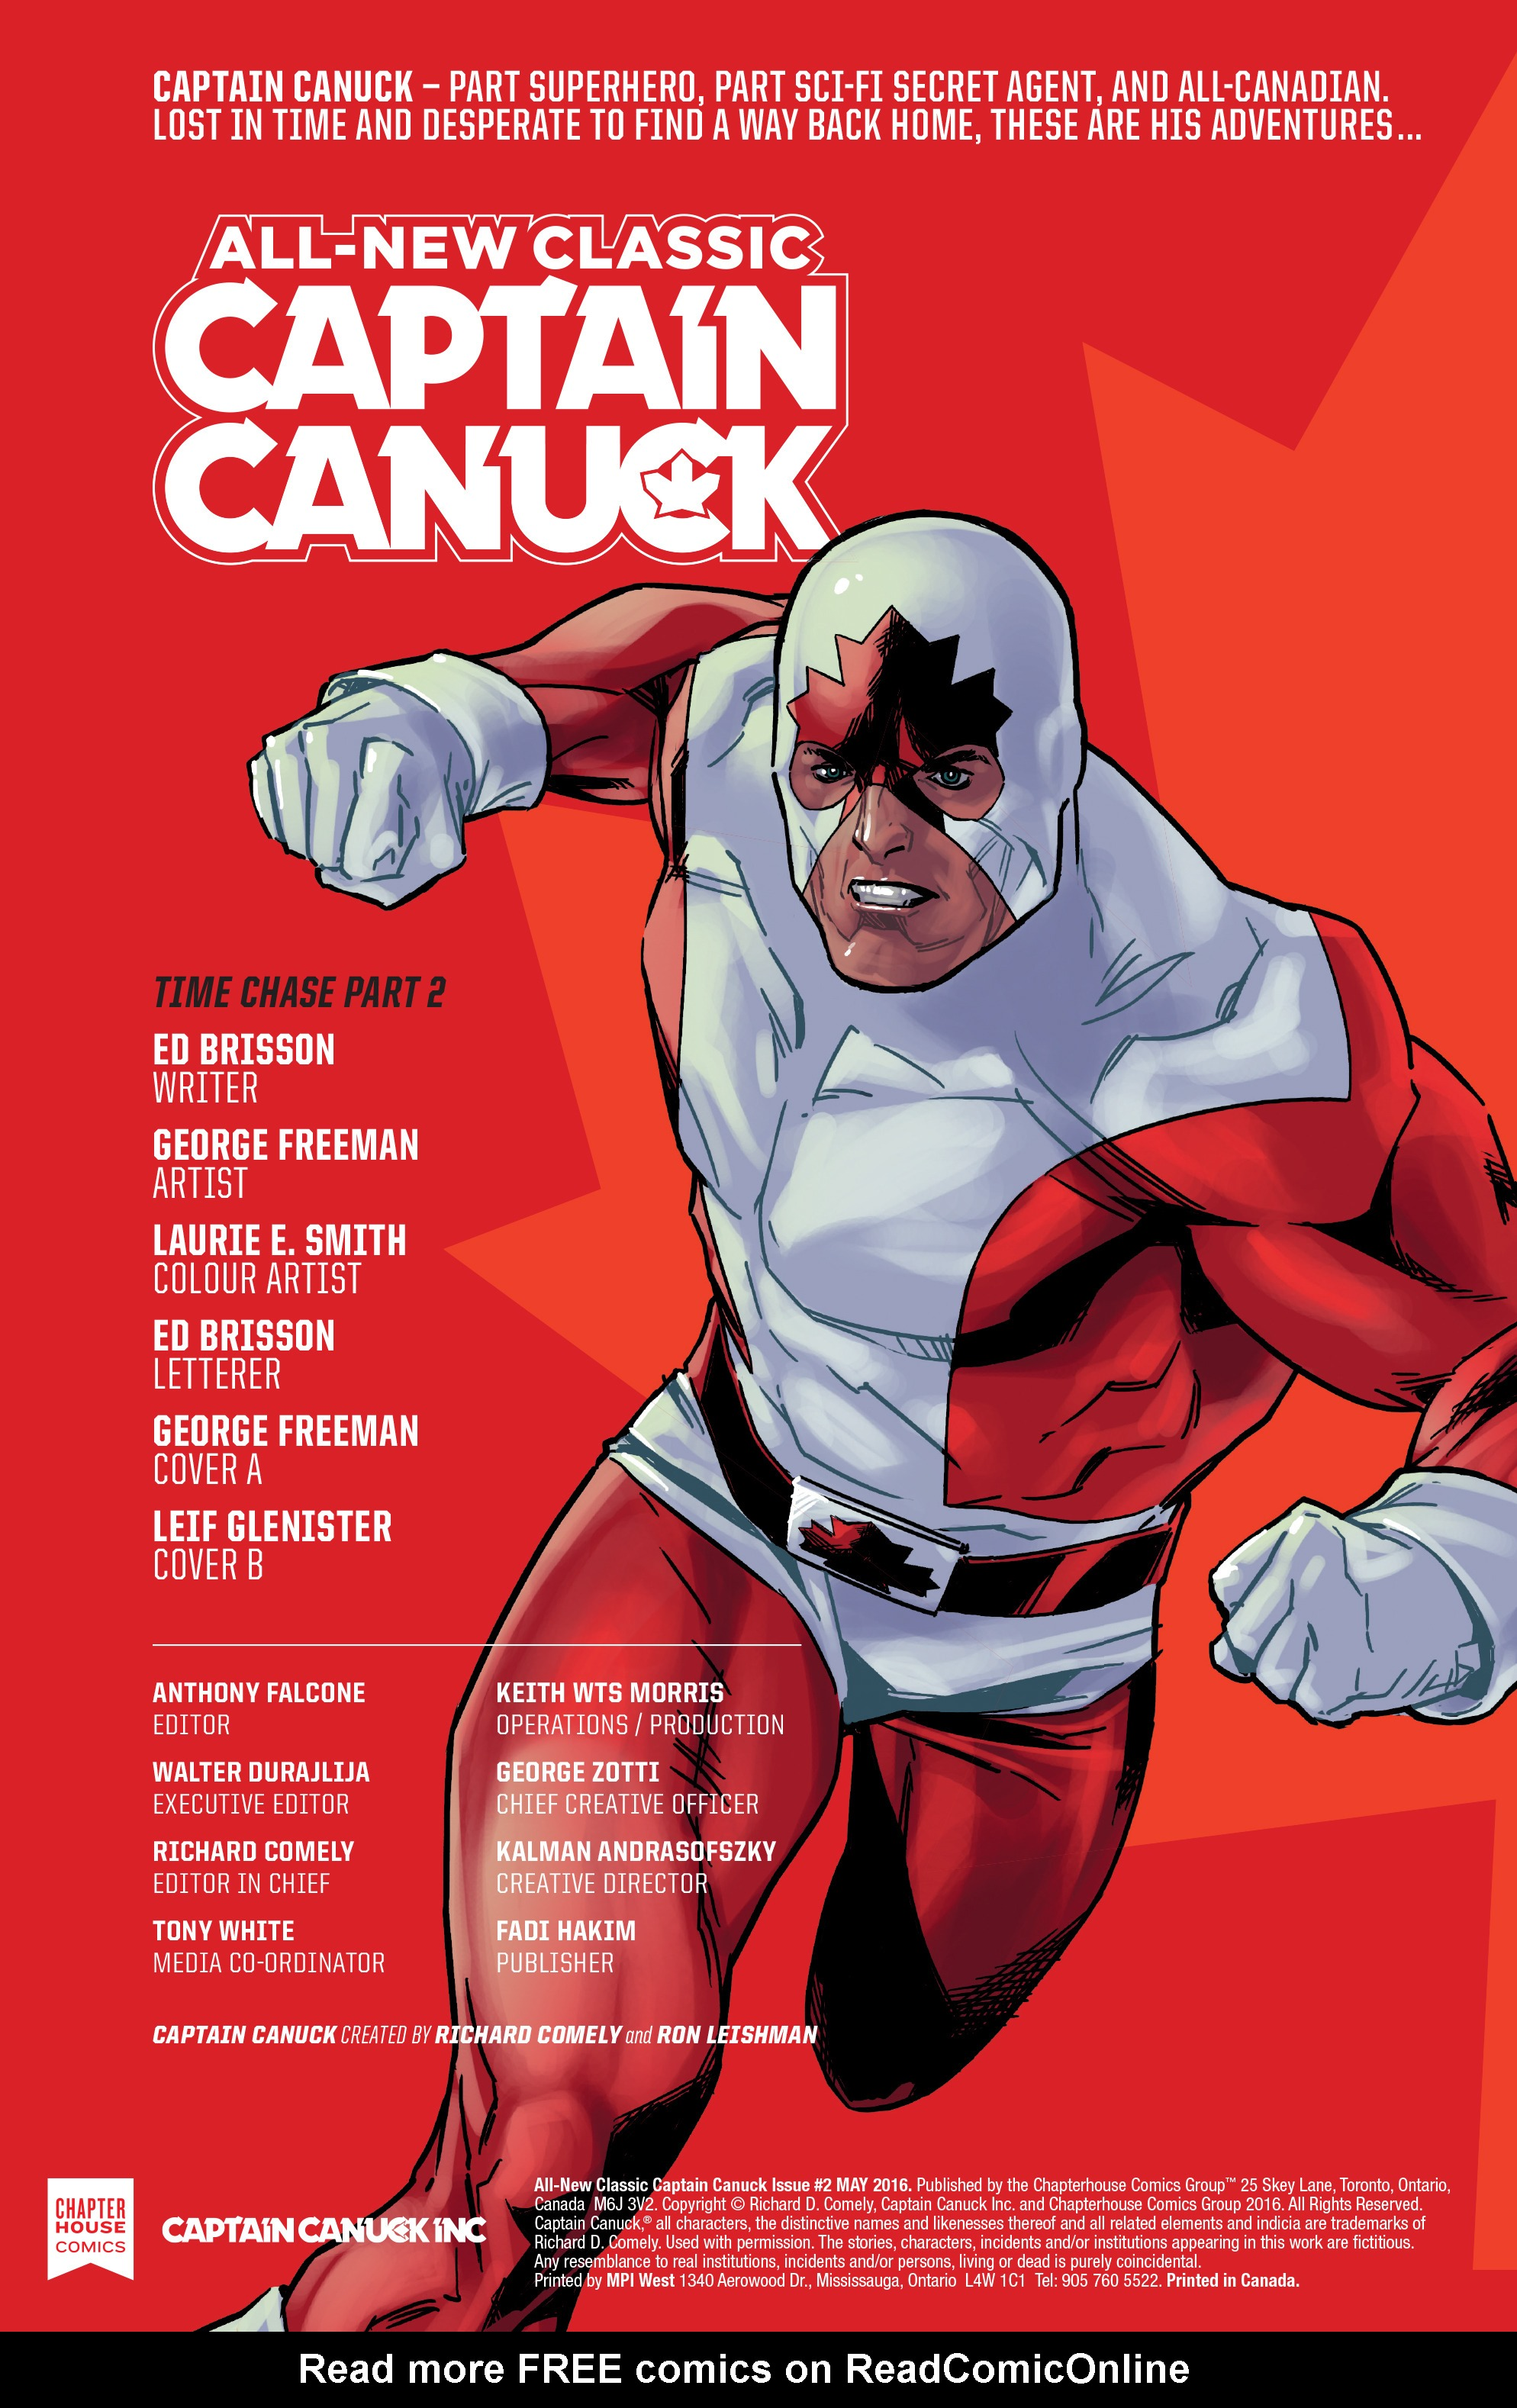 Read online All-New Classic Captain Canuck comic -  Issue #2 - 2